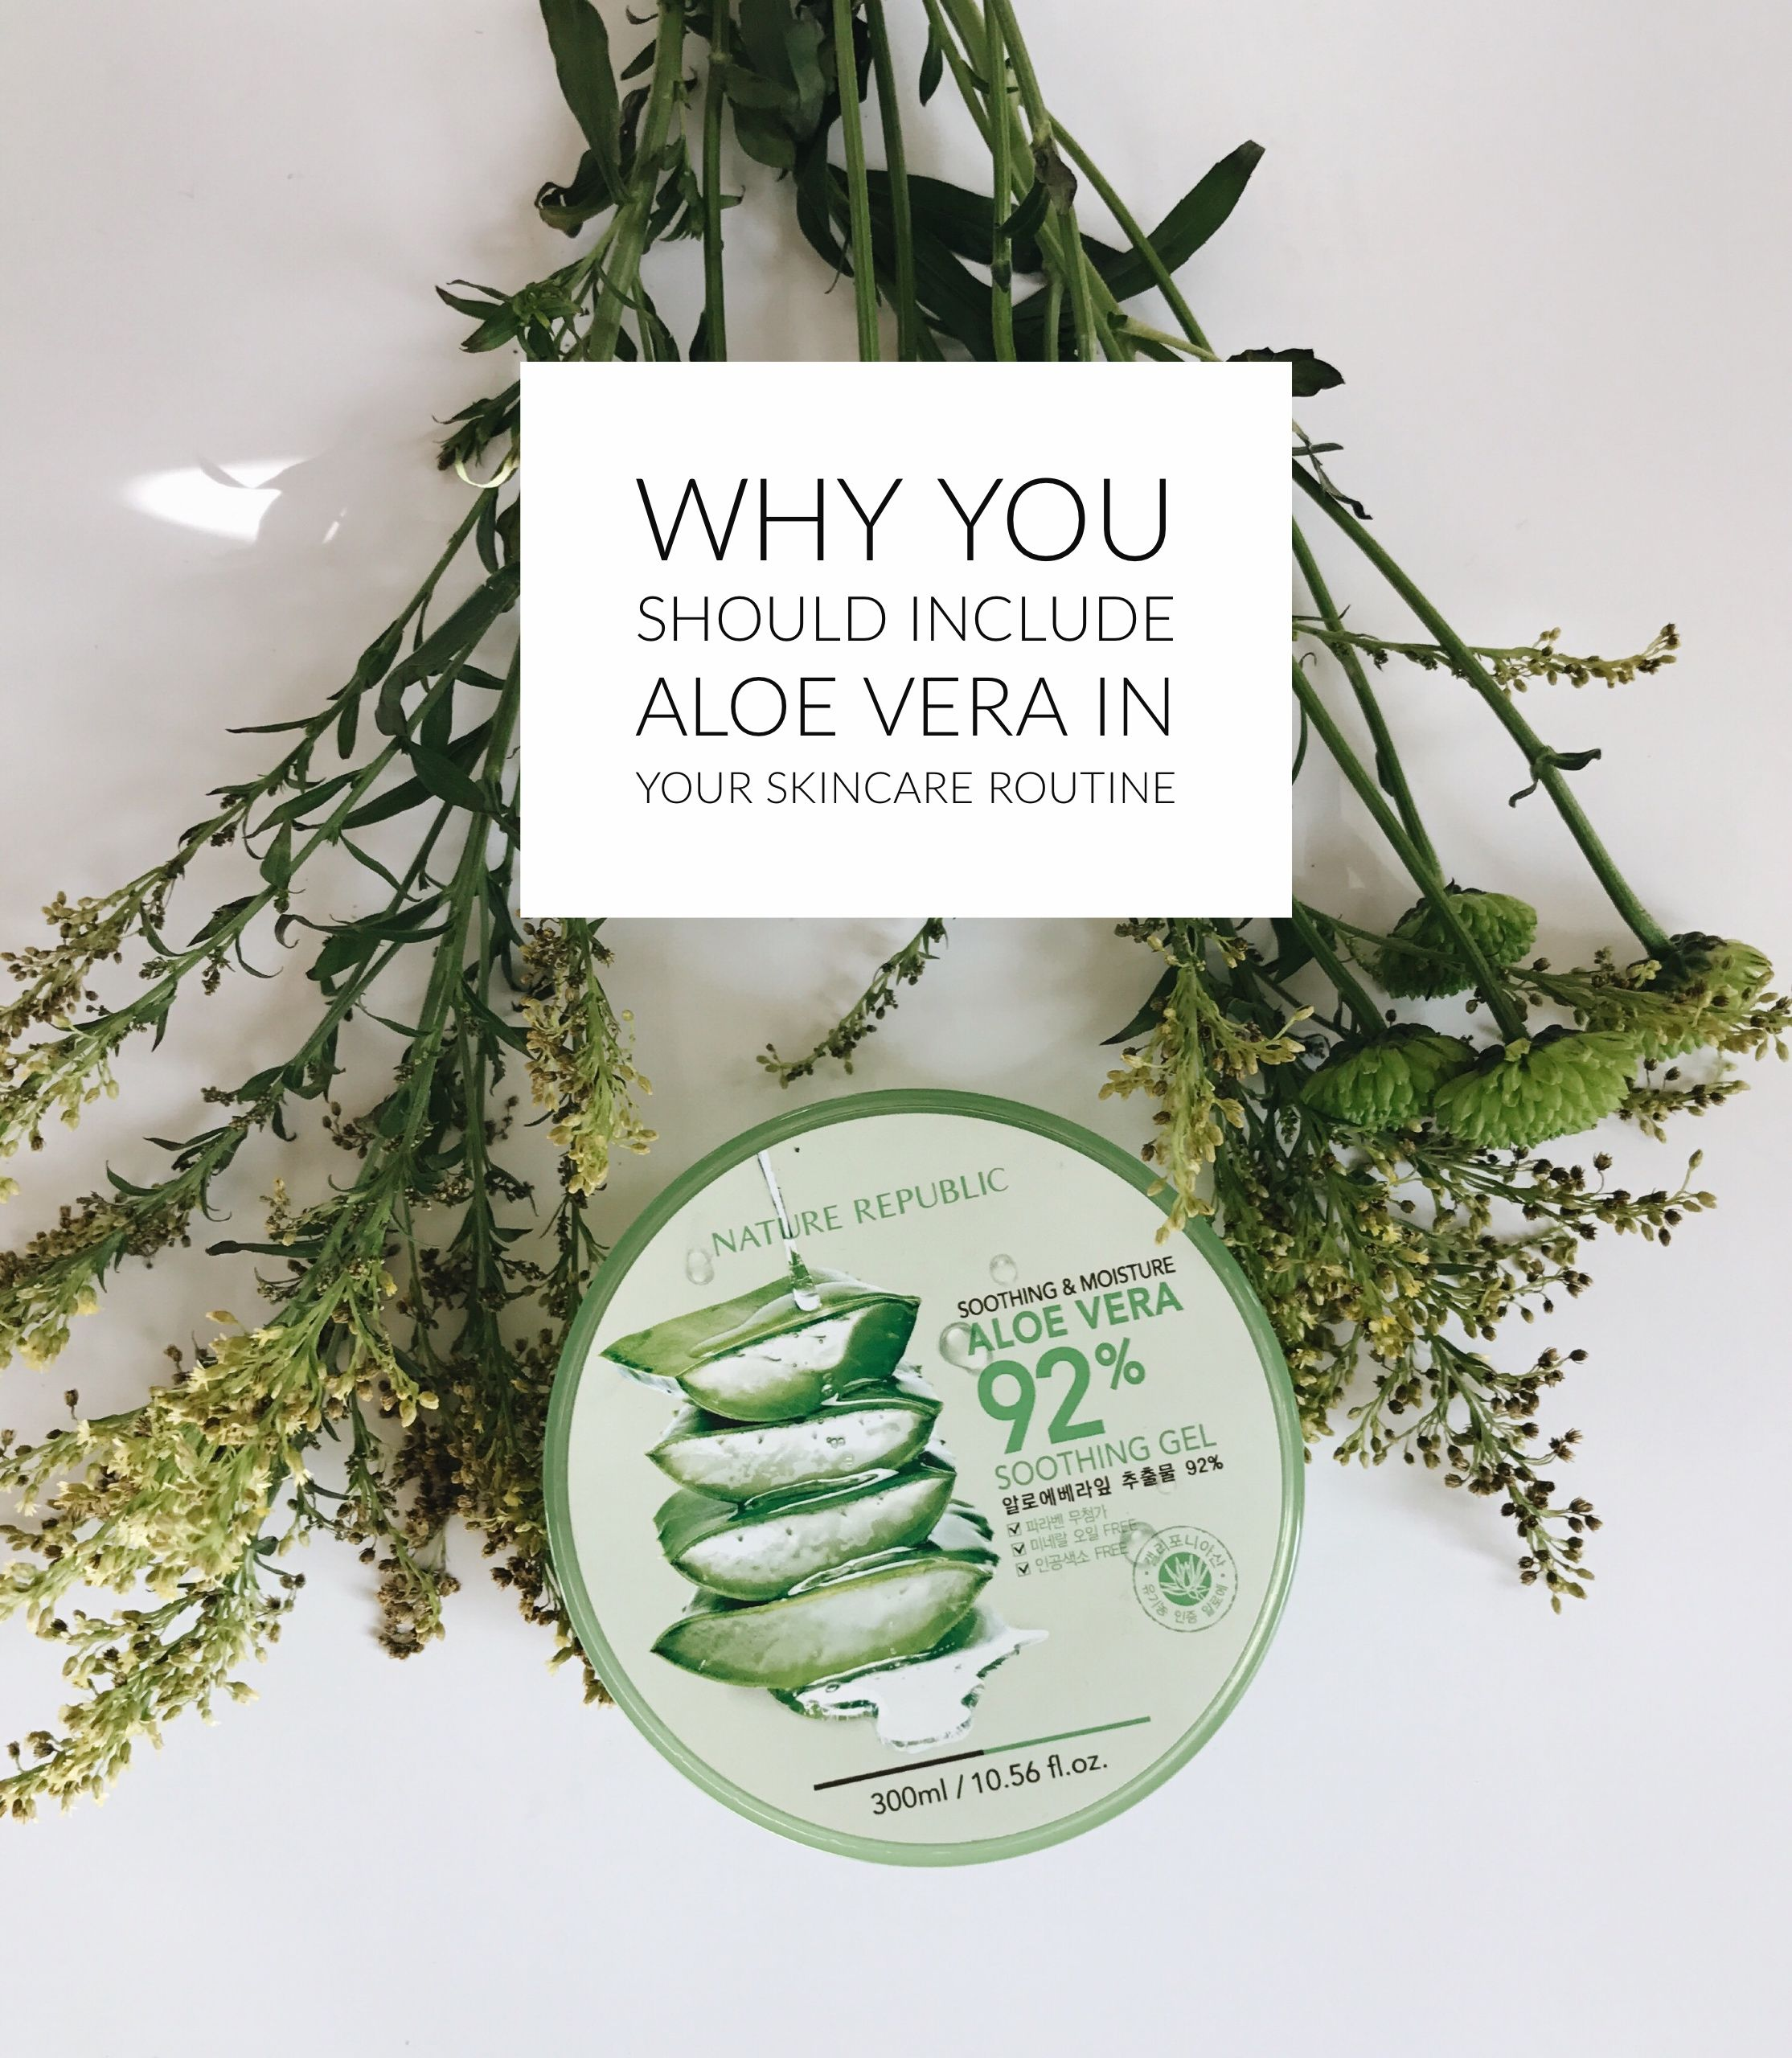 Why You Should Add Aloe Vera To Your Skincare Routine Kesehatan Dekorasi